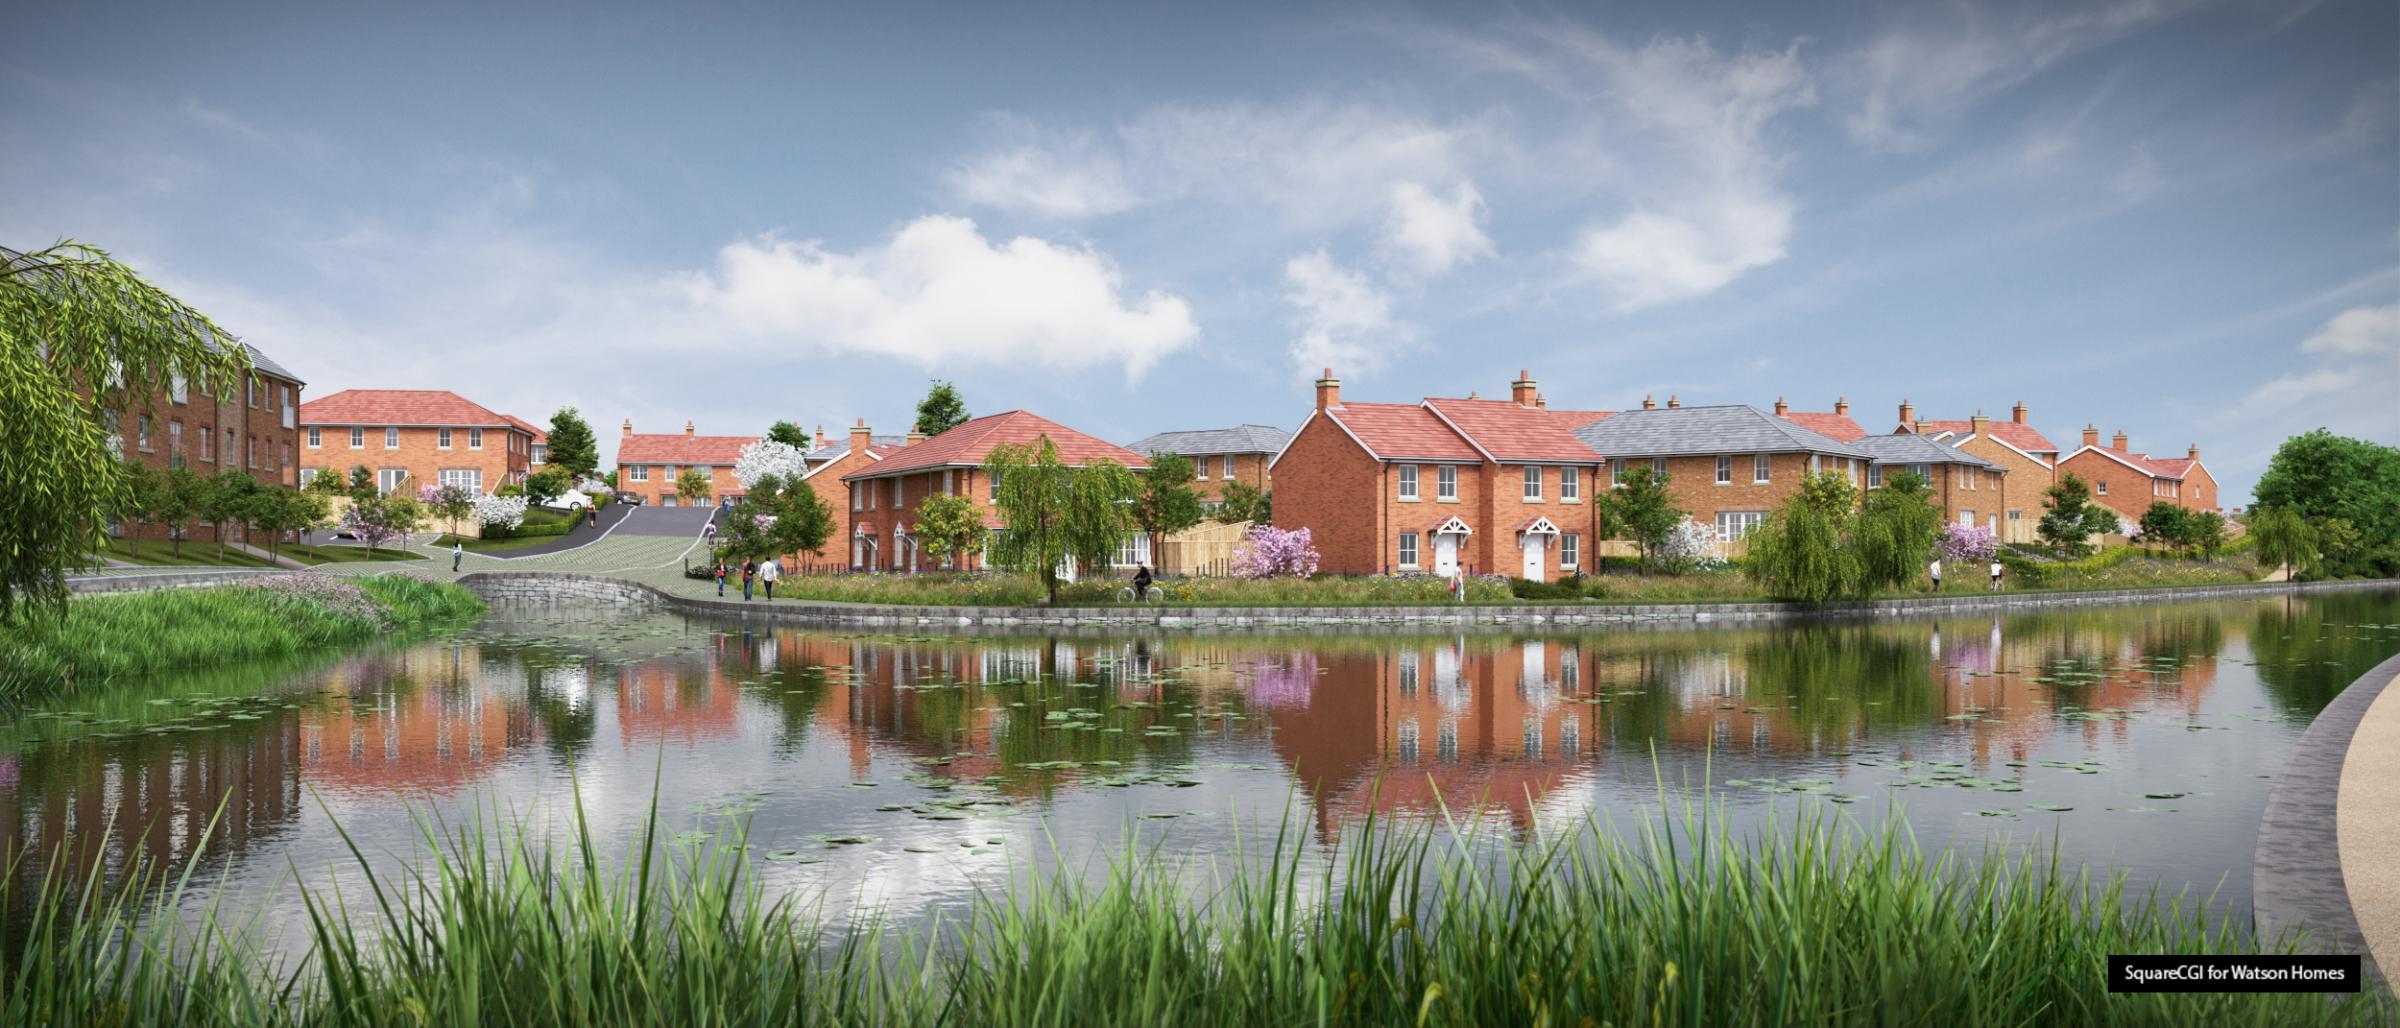 Plans for new Creams Mill and Hall Lane estate in Little Lever - The Bolton News